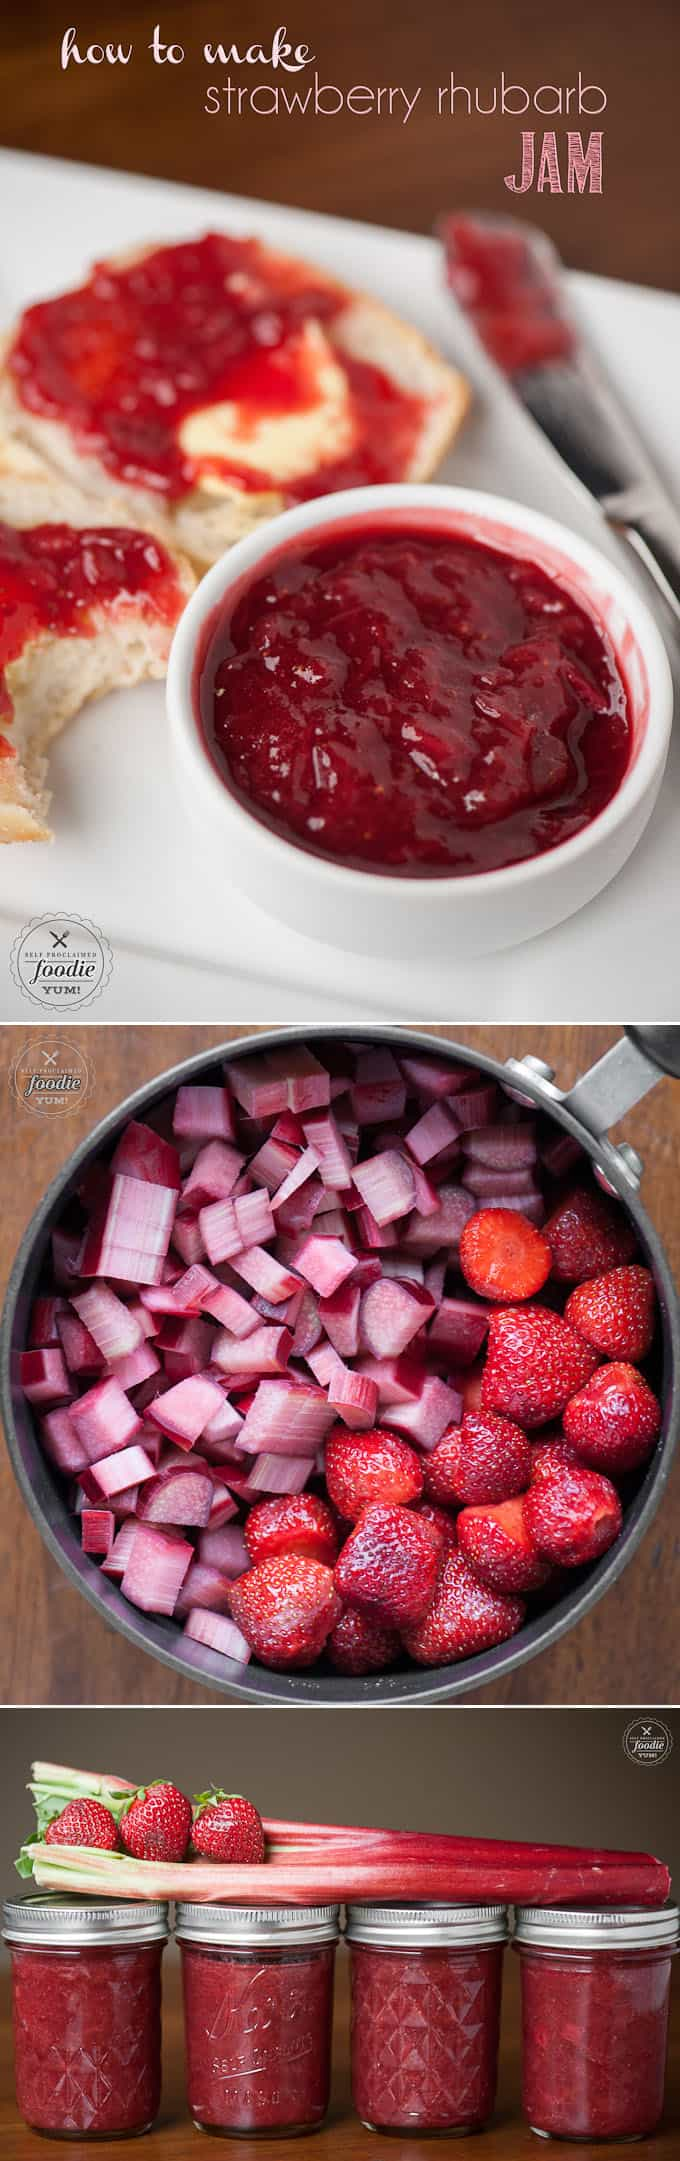 Canning in jars is easy when you know How to Make Strawberry Rhubarb Jam from fresh rhubarb, strawberries, sugar and lemon without pectin. #strawberry #rhubarb #jam #jelly #strawberryrhubarb #strawberryrhubarbjam